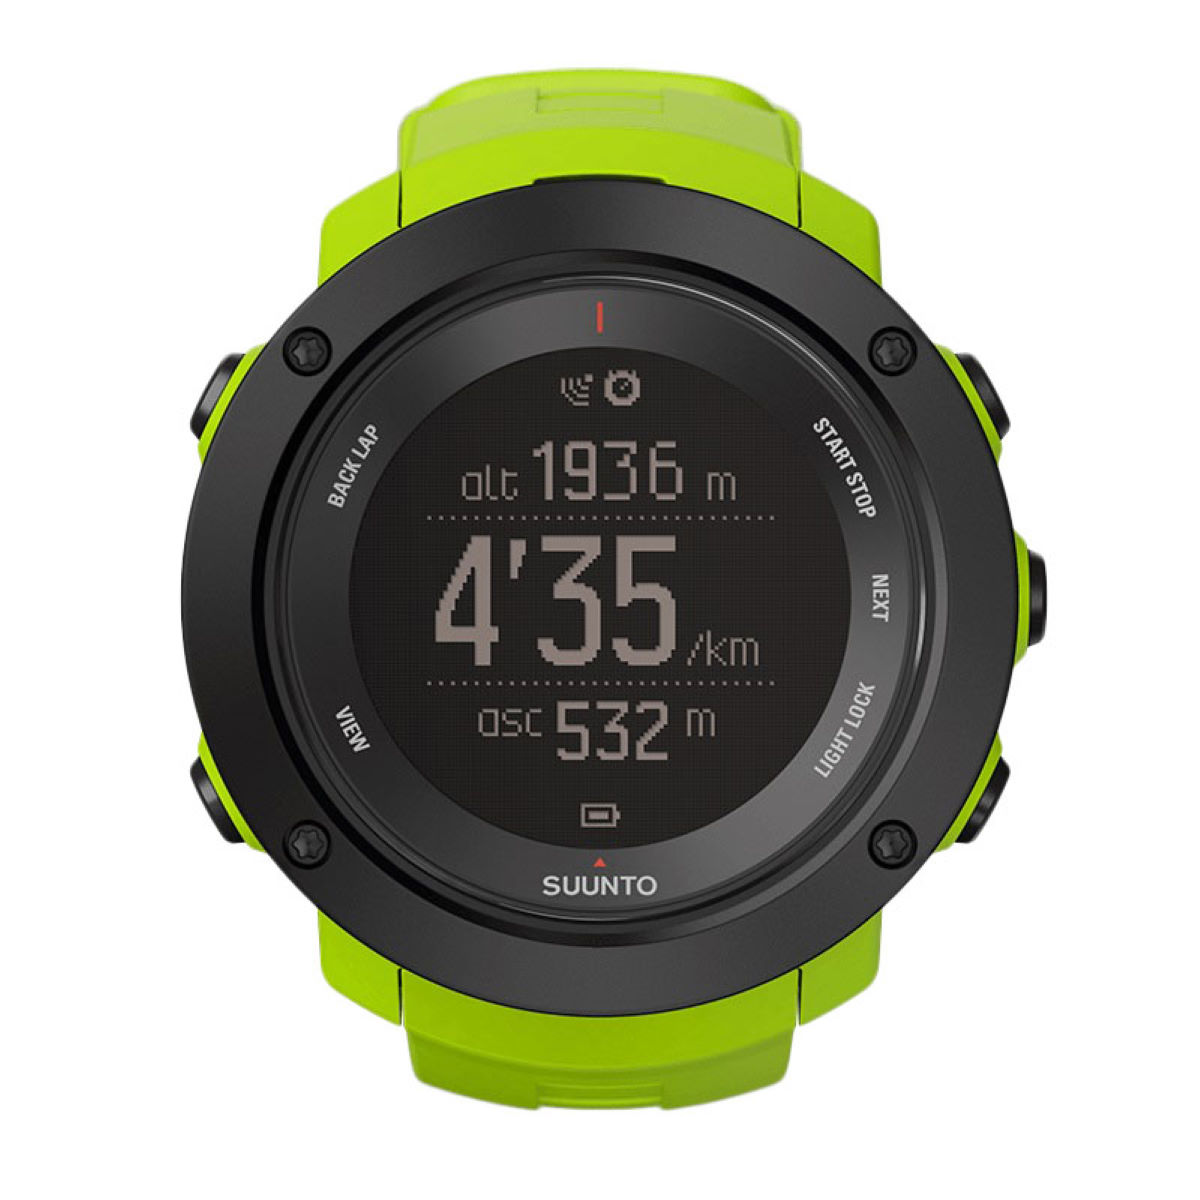 Montre Suunto Ambit 3 Vertical - Vert Compteurs GPS de running